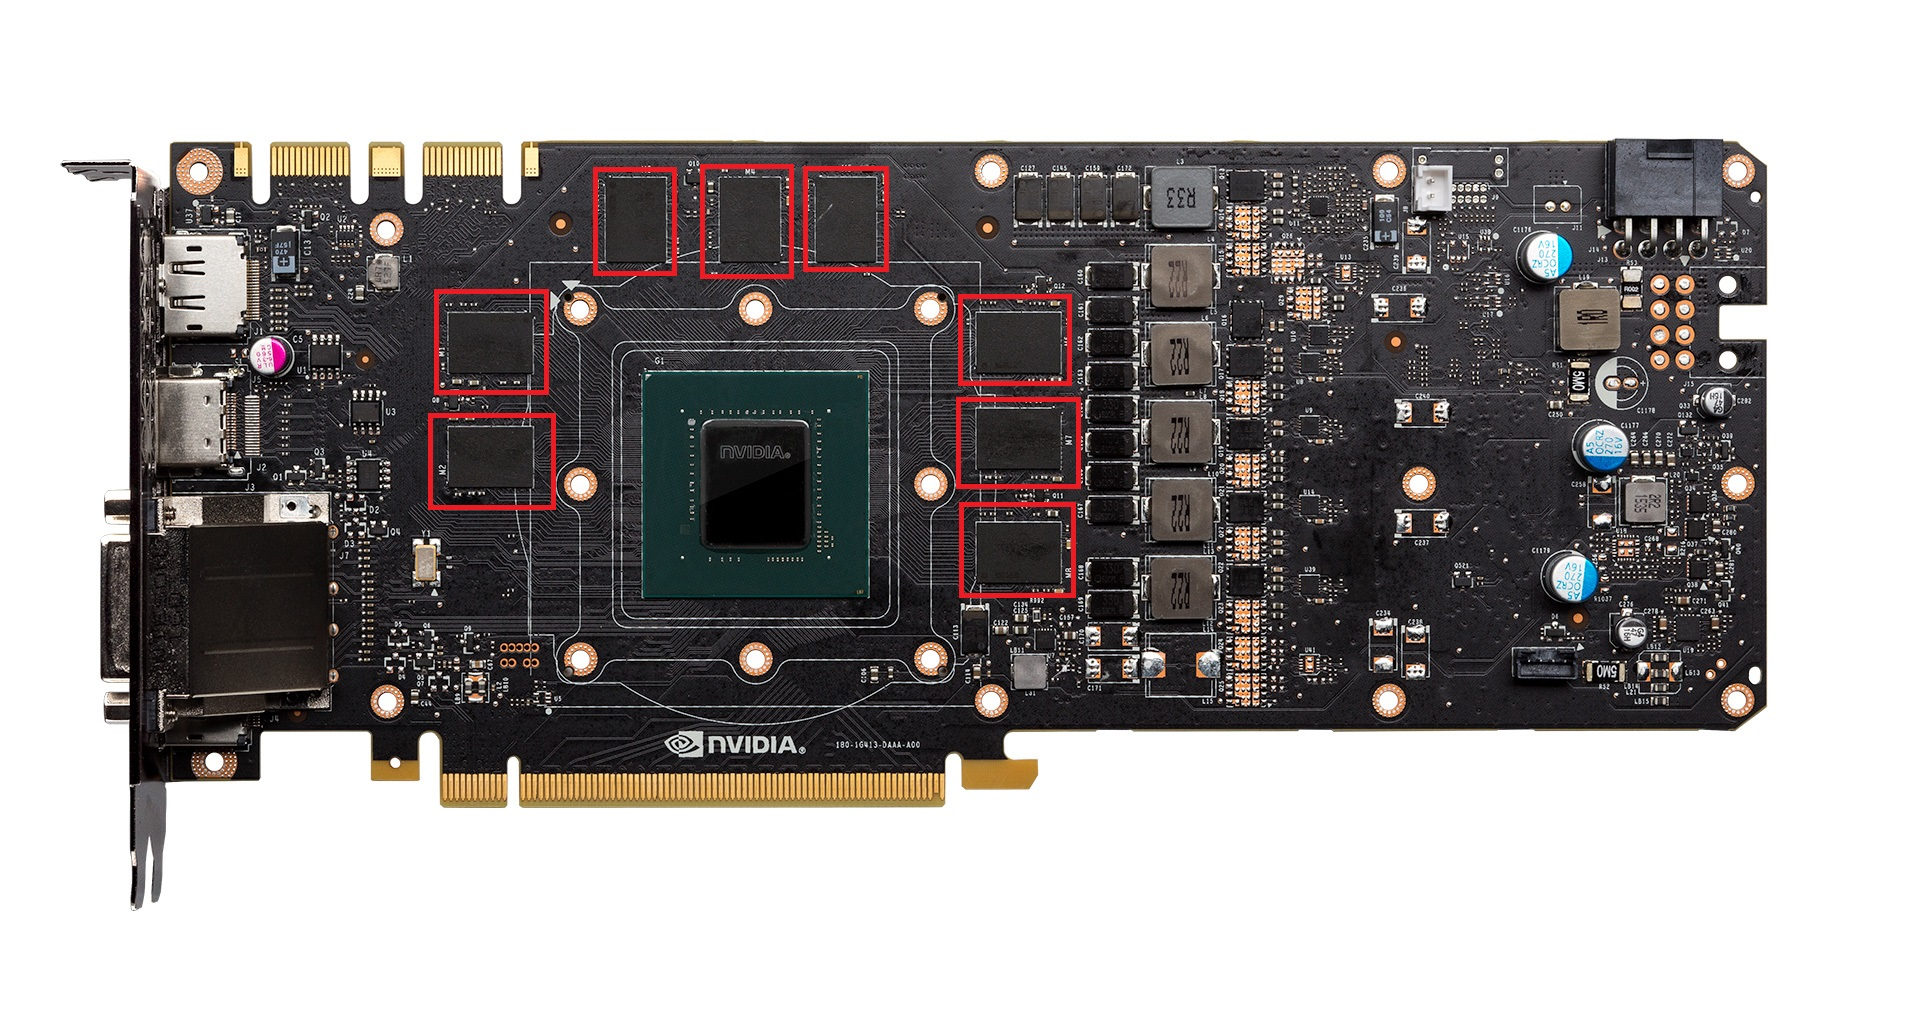 is it possible to make windows only see & use 6gb mem on gtx 1080 cards ?